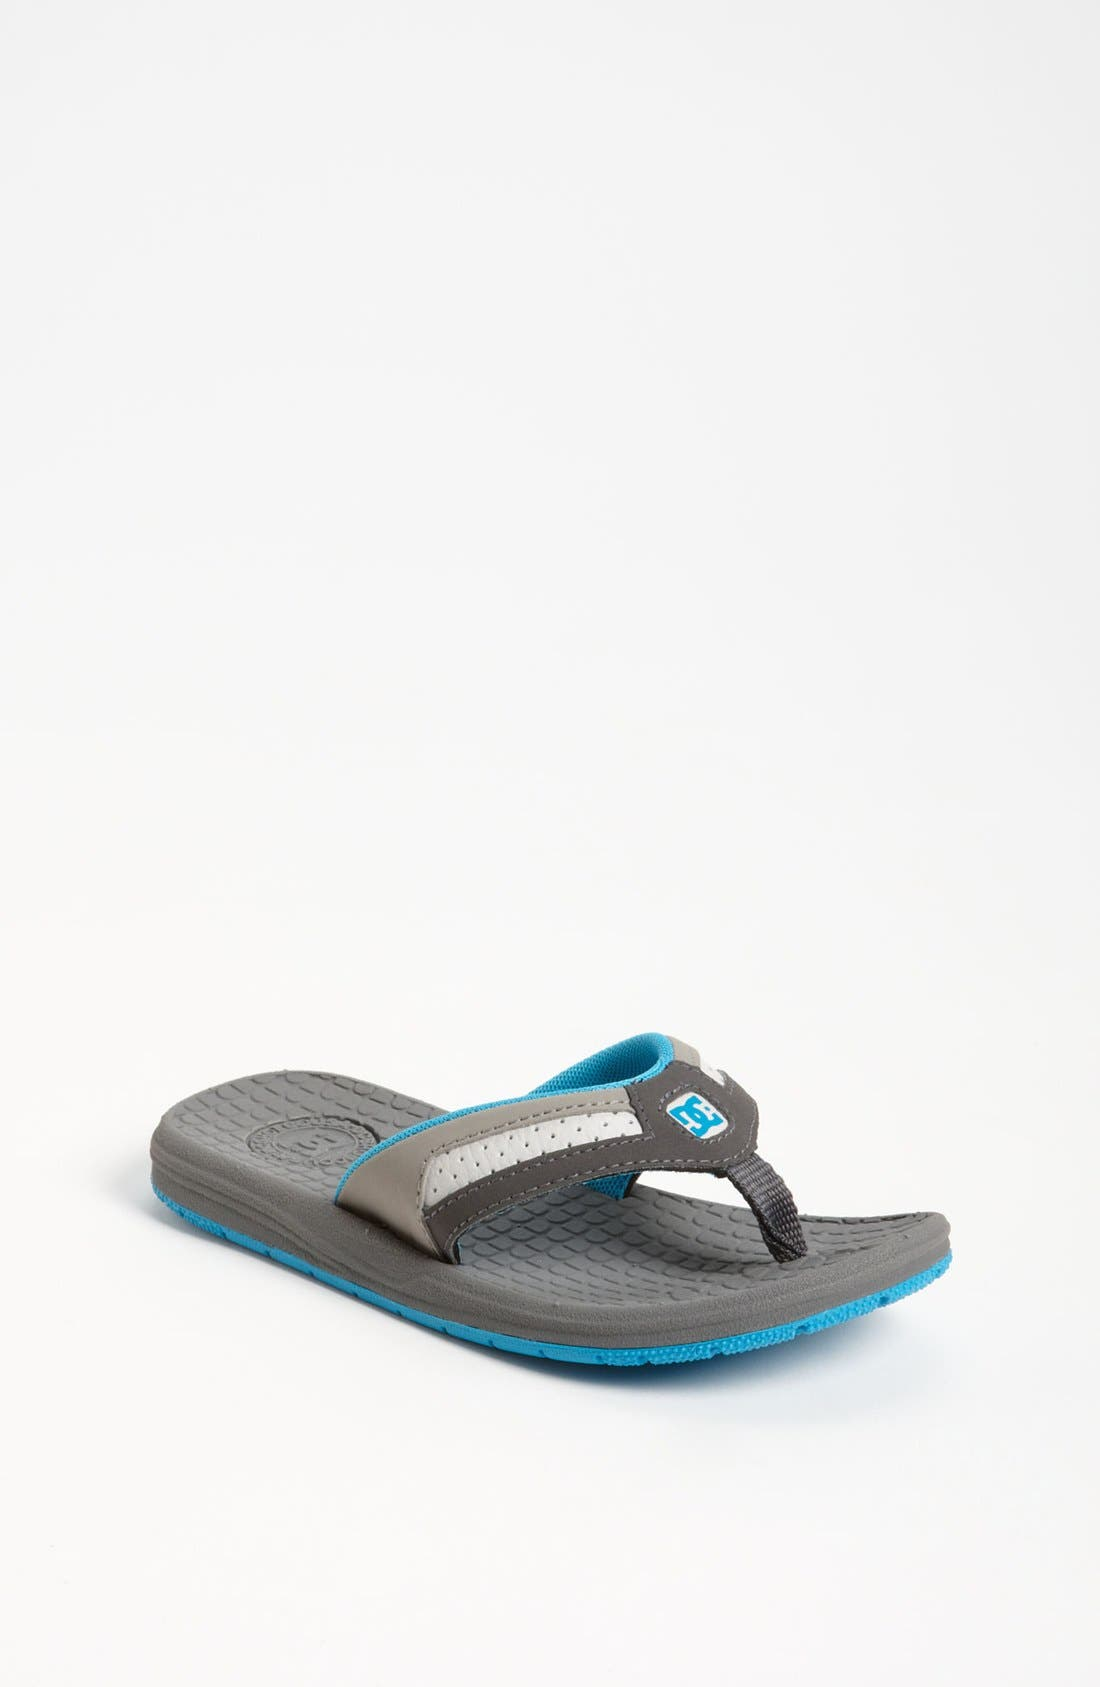 Main Image - DC Shoes 'Cabo' Flip Flop (Toddler, Little Kid & Big Kid)